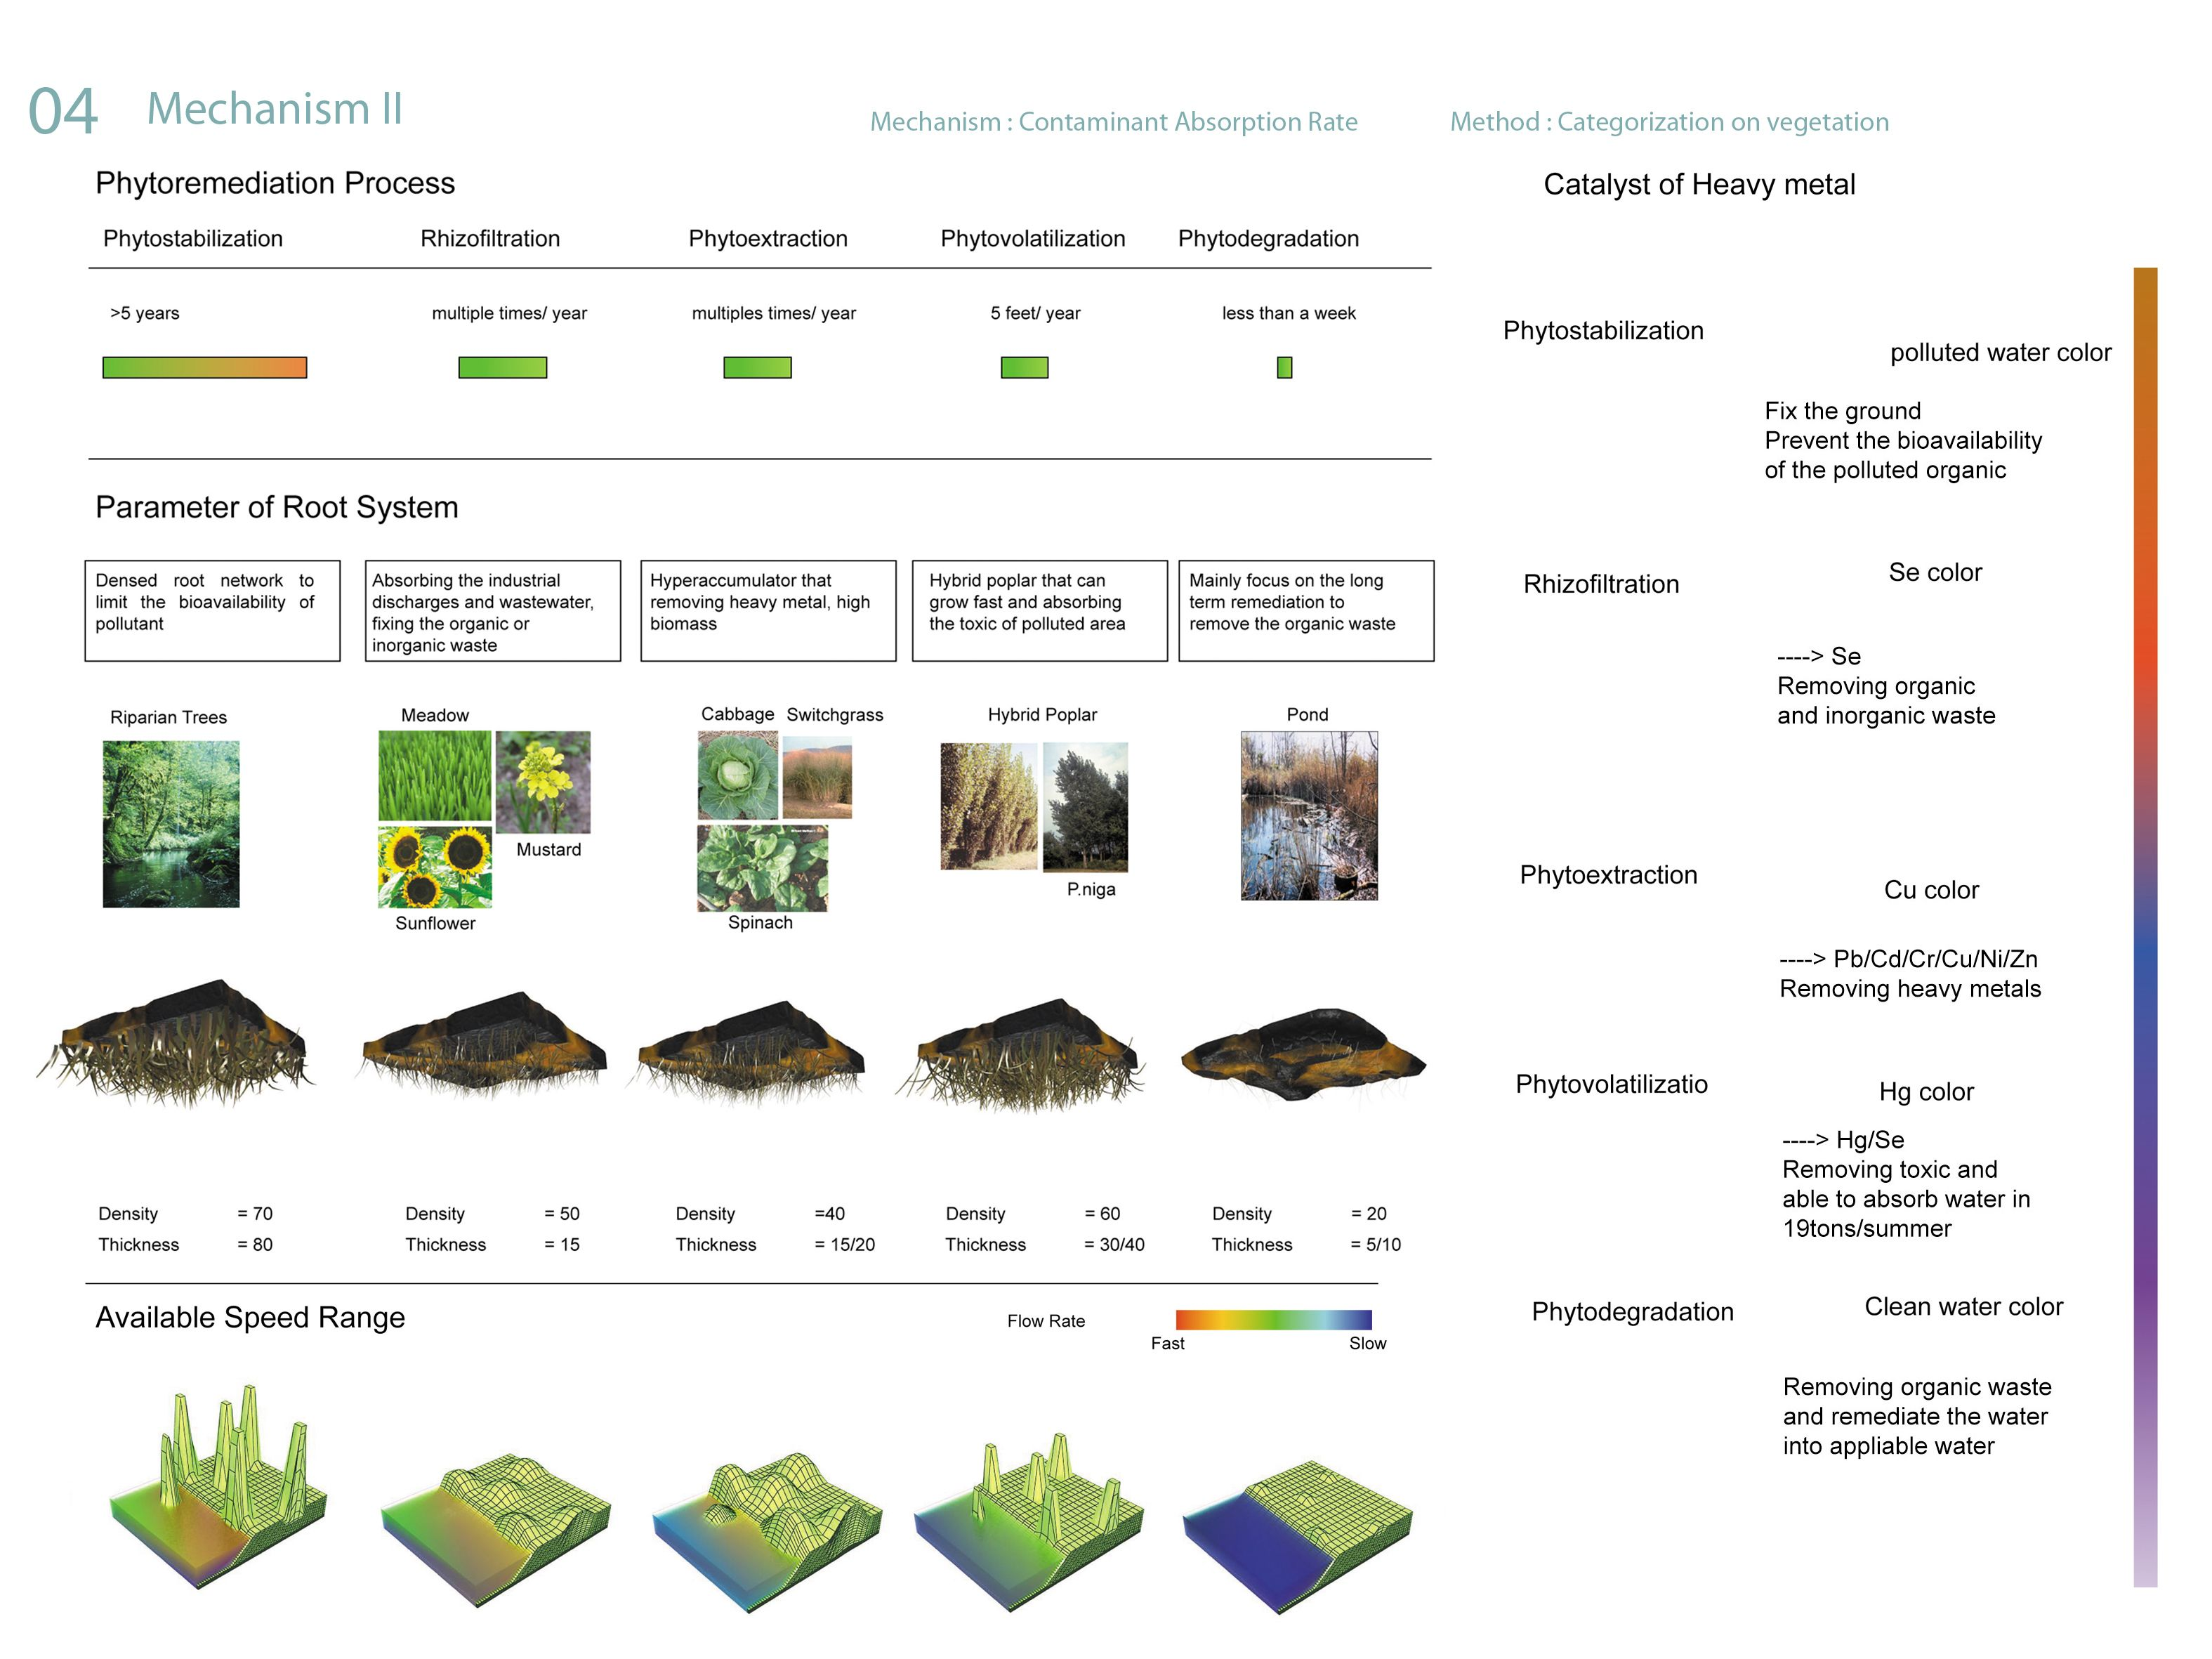 Phytoremediation is a bioremediation process that uses